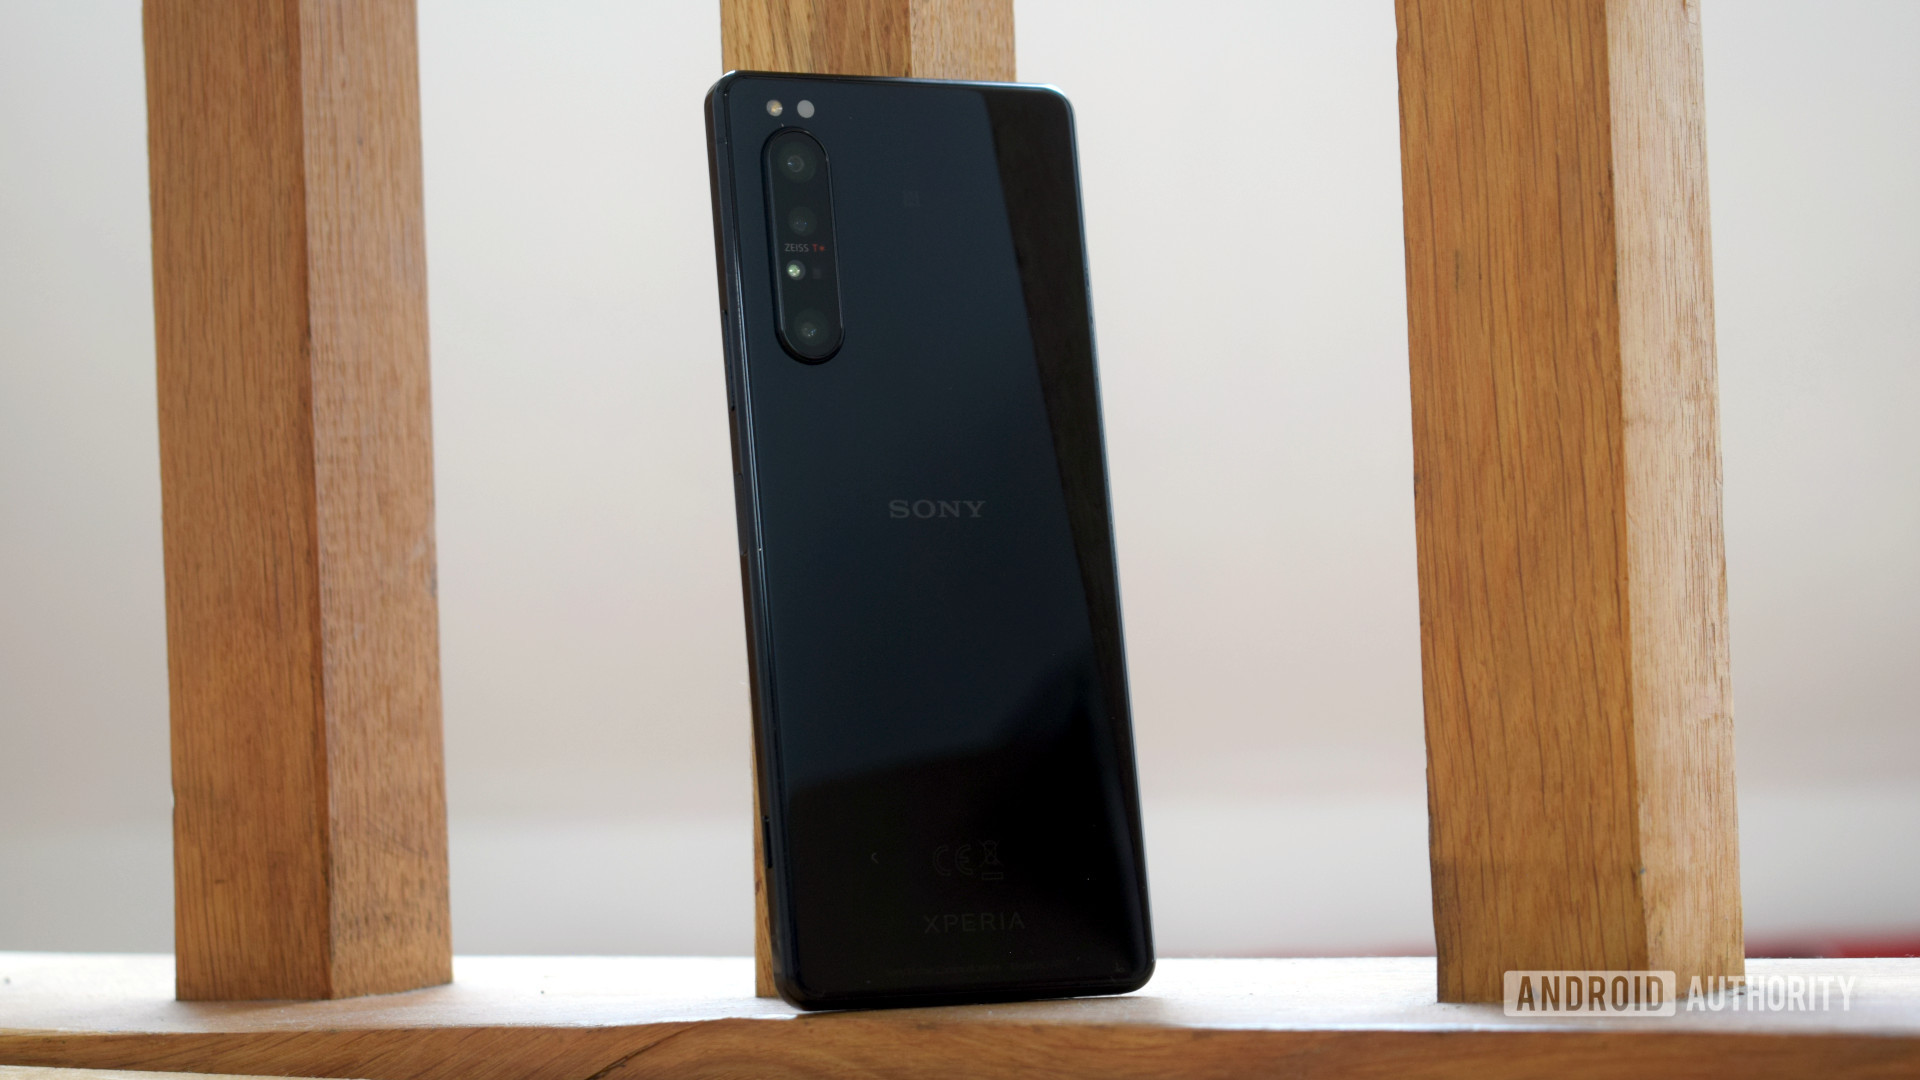 Sony Xperia 1 II review 1 year standing